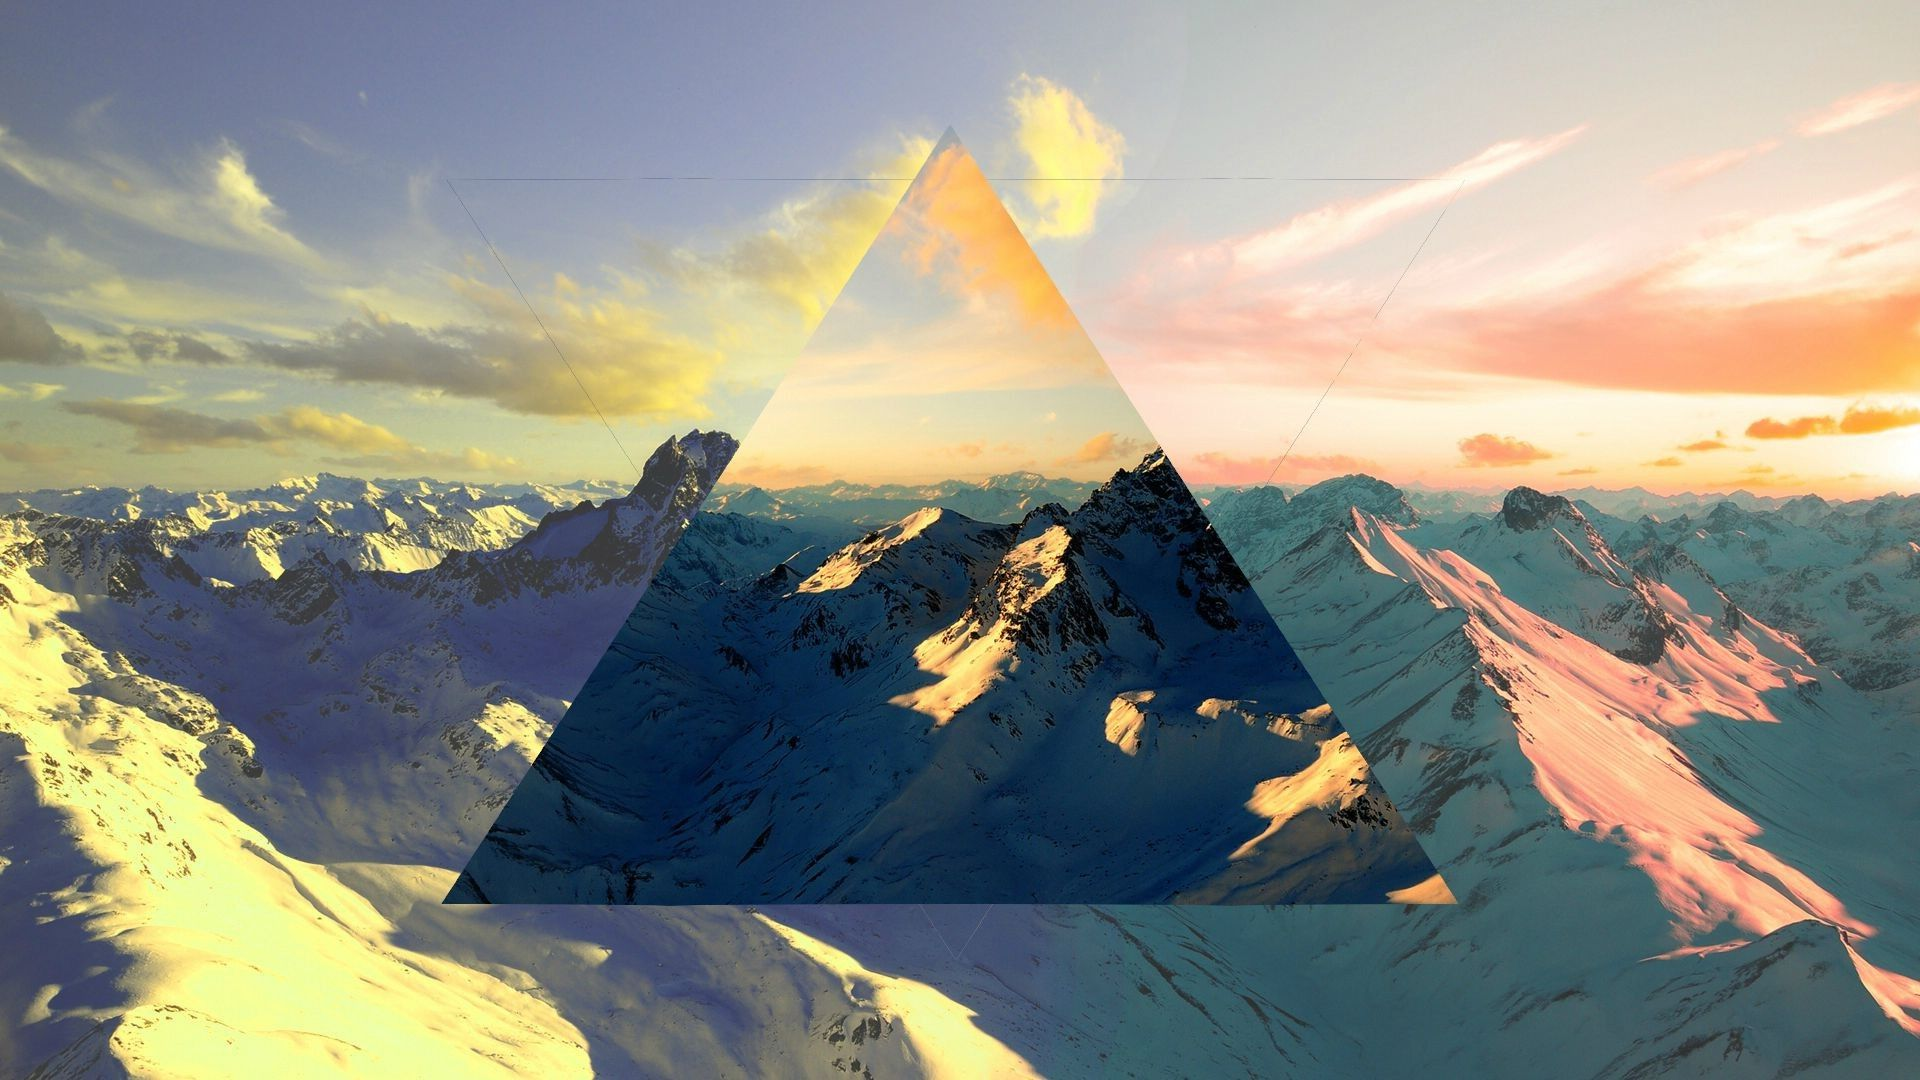 Polyscape Abstract Nature Mountain Wallpaper Desktop Background Images Photo Art Desktop Pictures